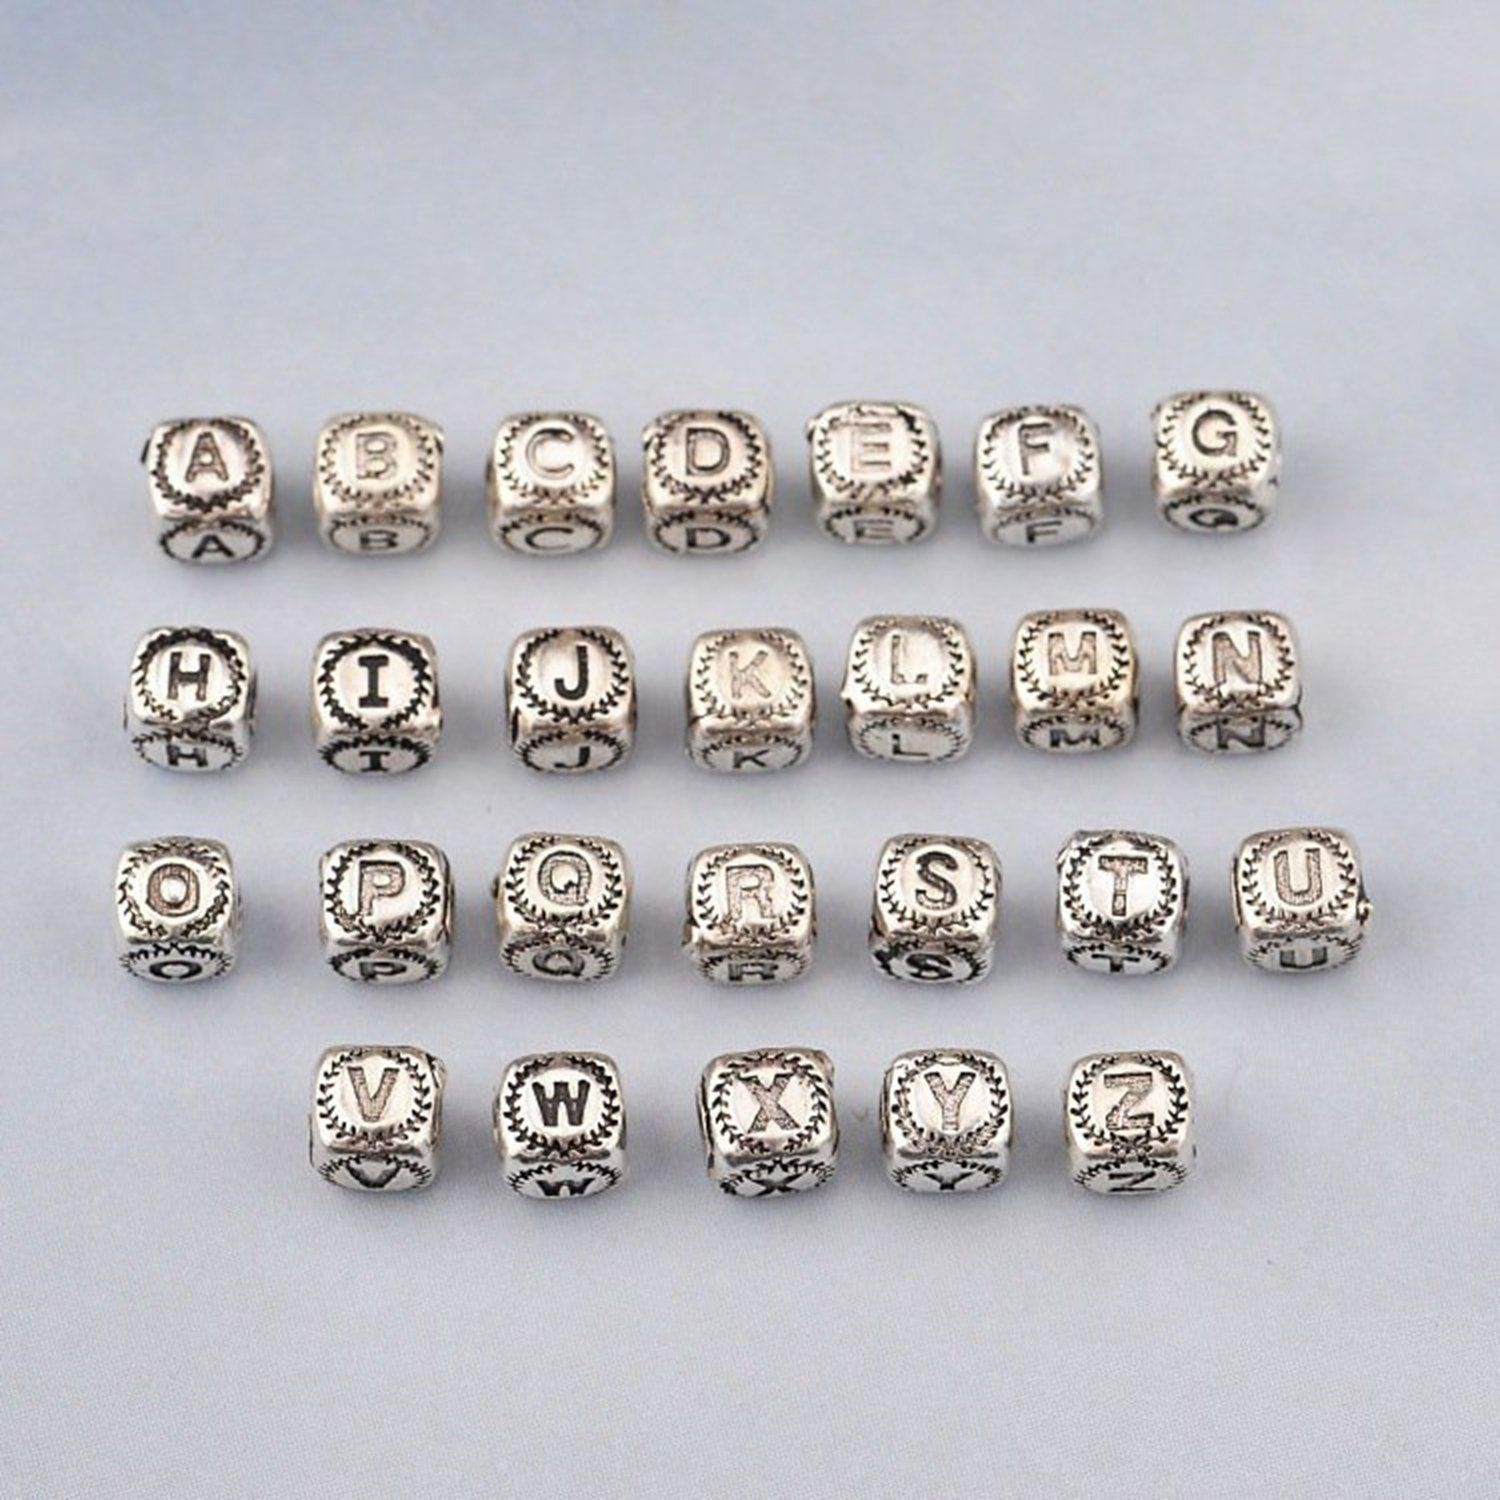 925 Sterling Silver Large Spiral Bali Beads for Bracelets or Necklac 3 Beads